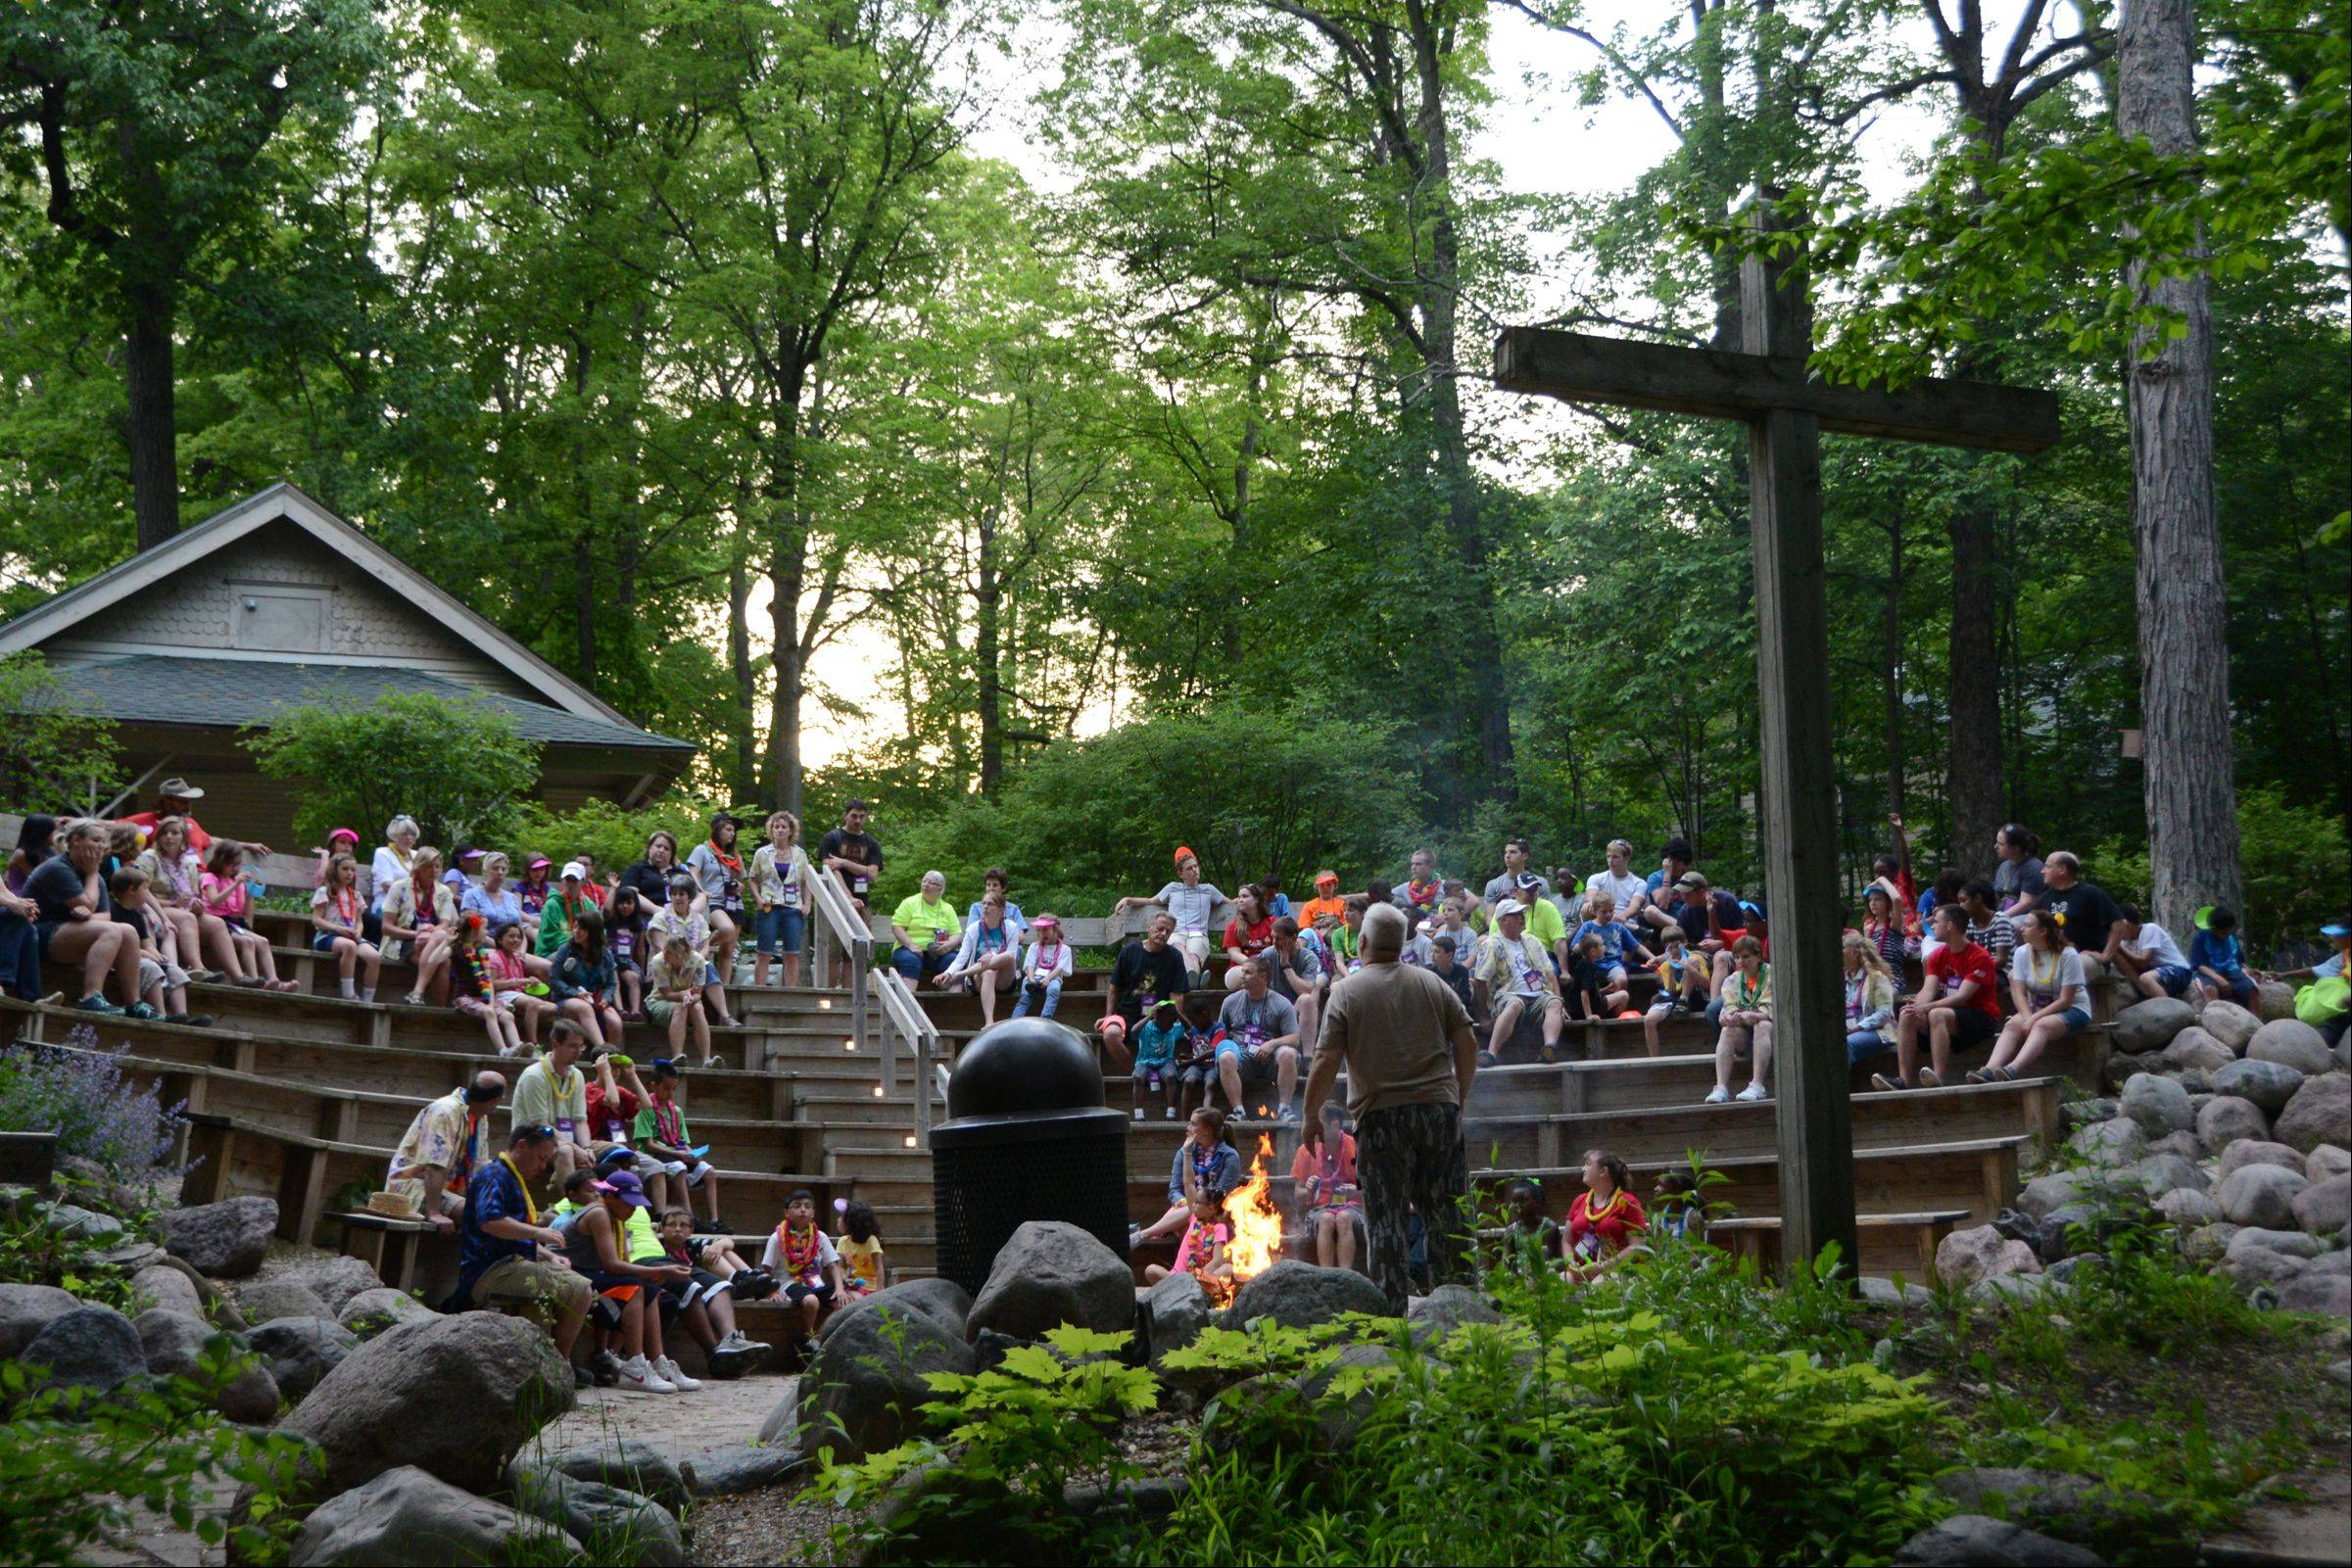 Royal Family Kids Camp volunteer Danny Sarros of Geneva leads campers and counselors in camp songs during the campfire time that ends the day. Campers and counselors talk about where they saw God in action at camp during the day.